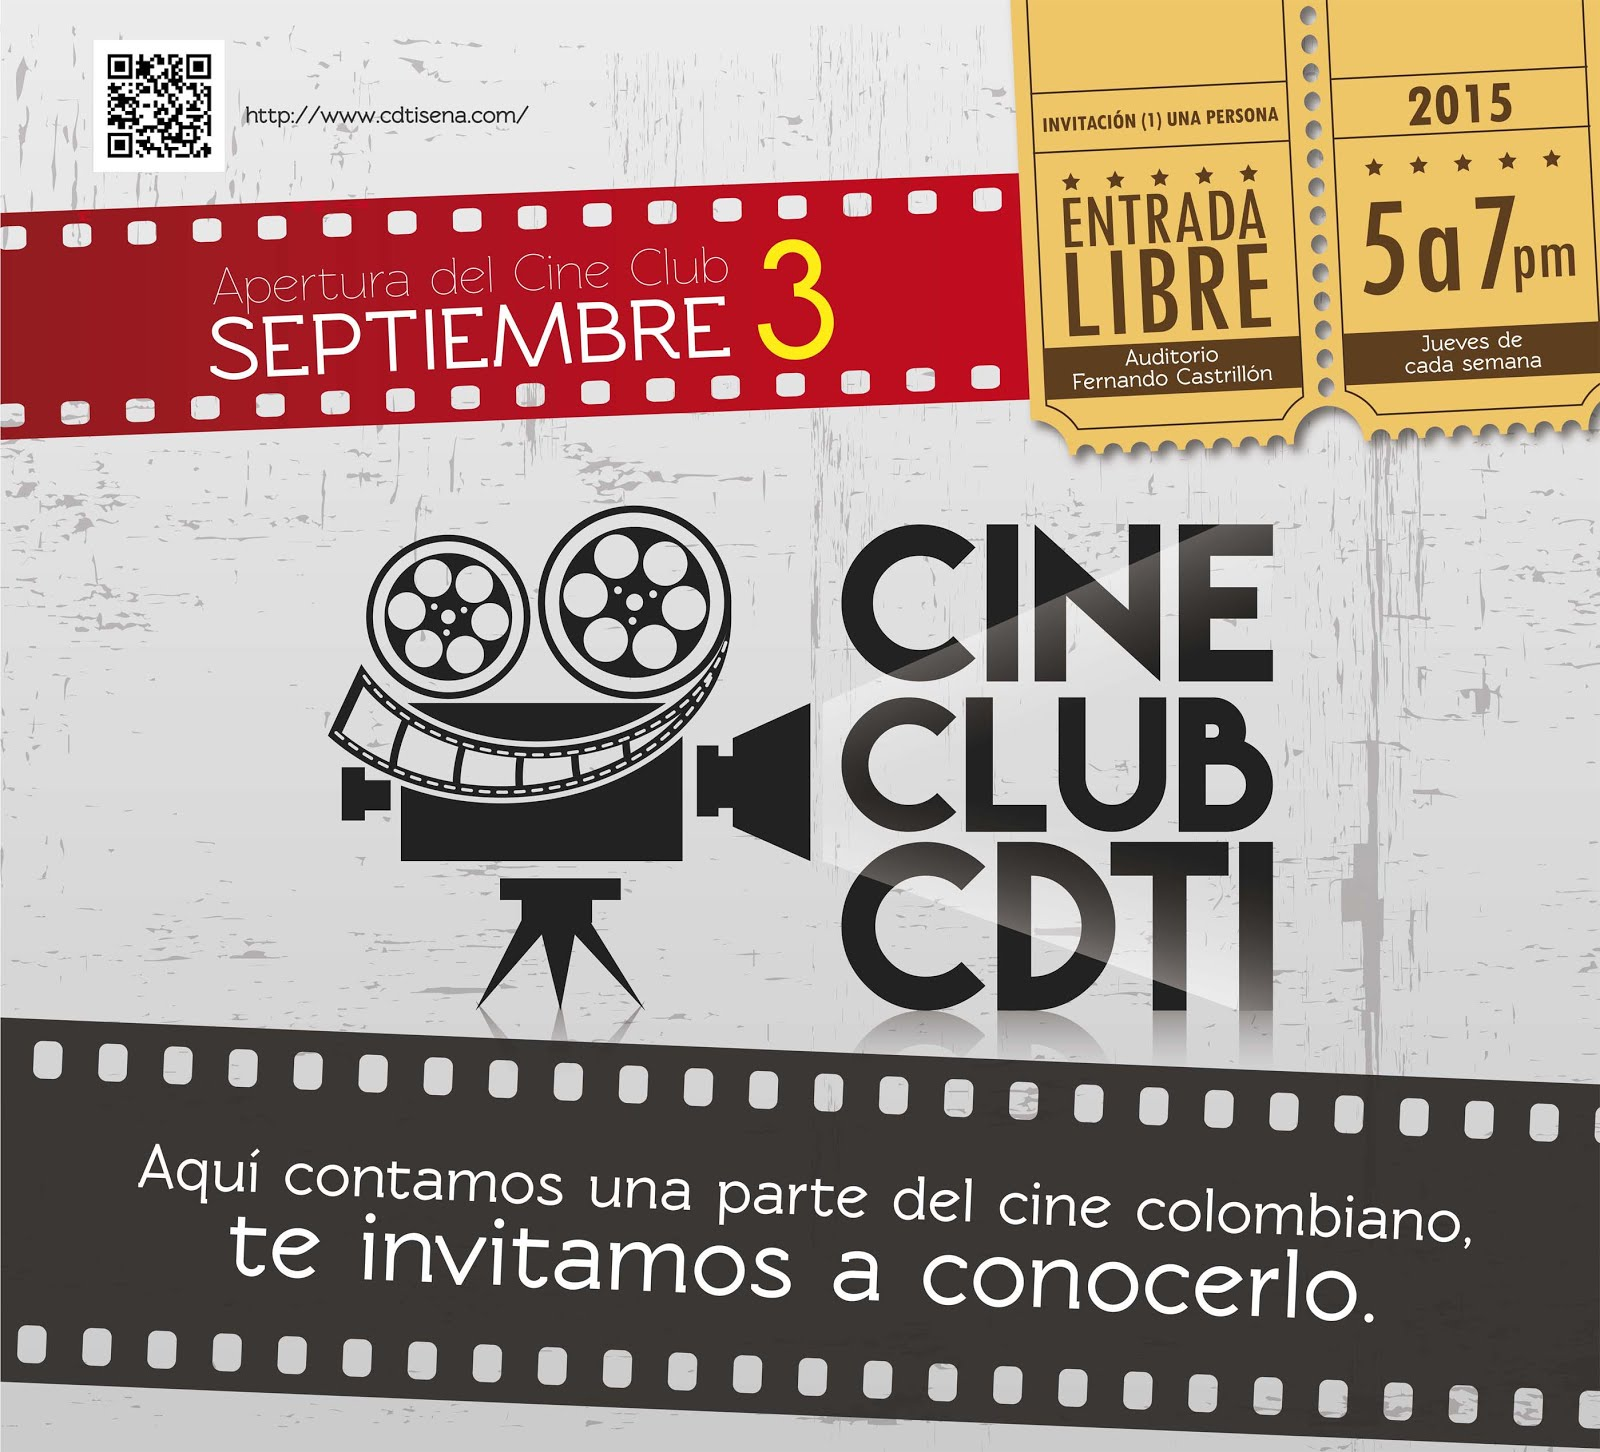 CINECLUB C.D.T.I.